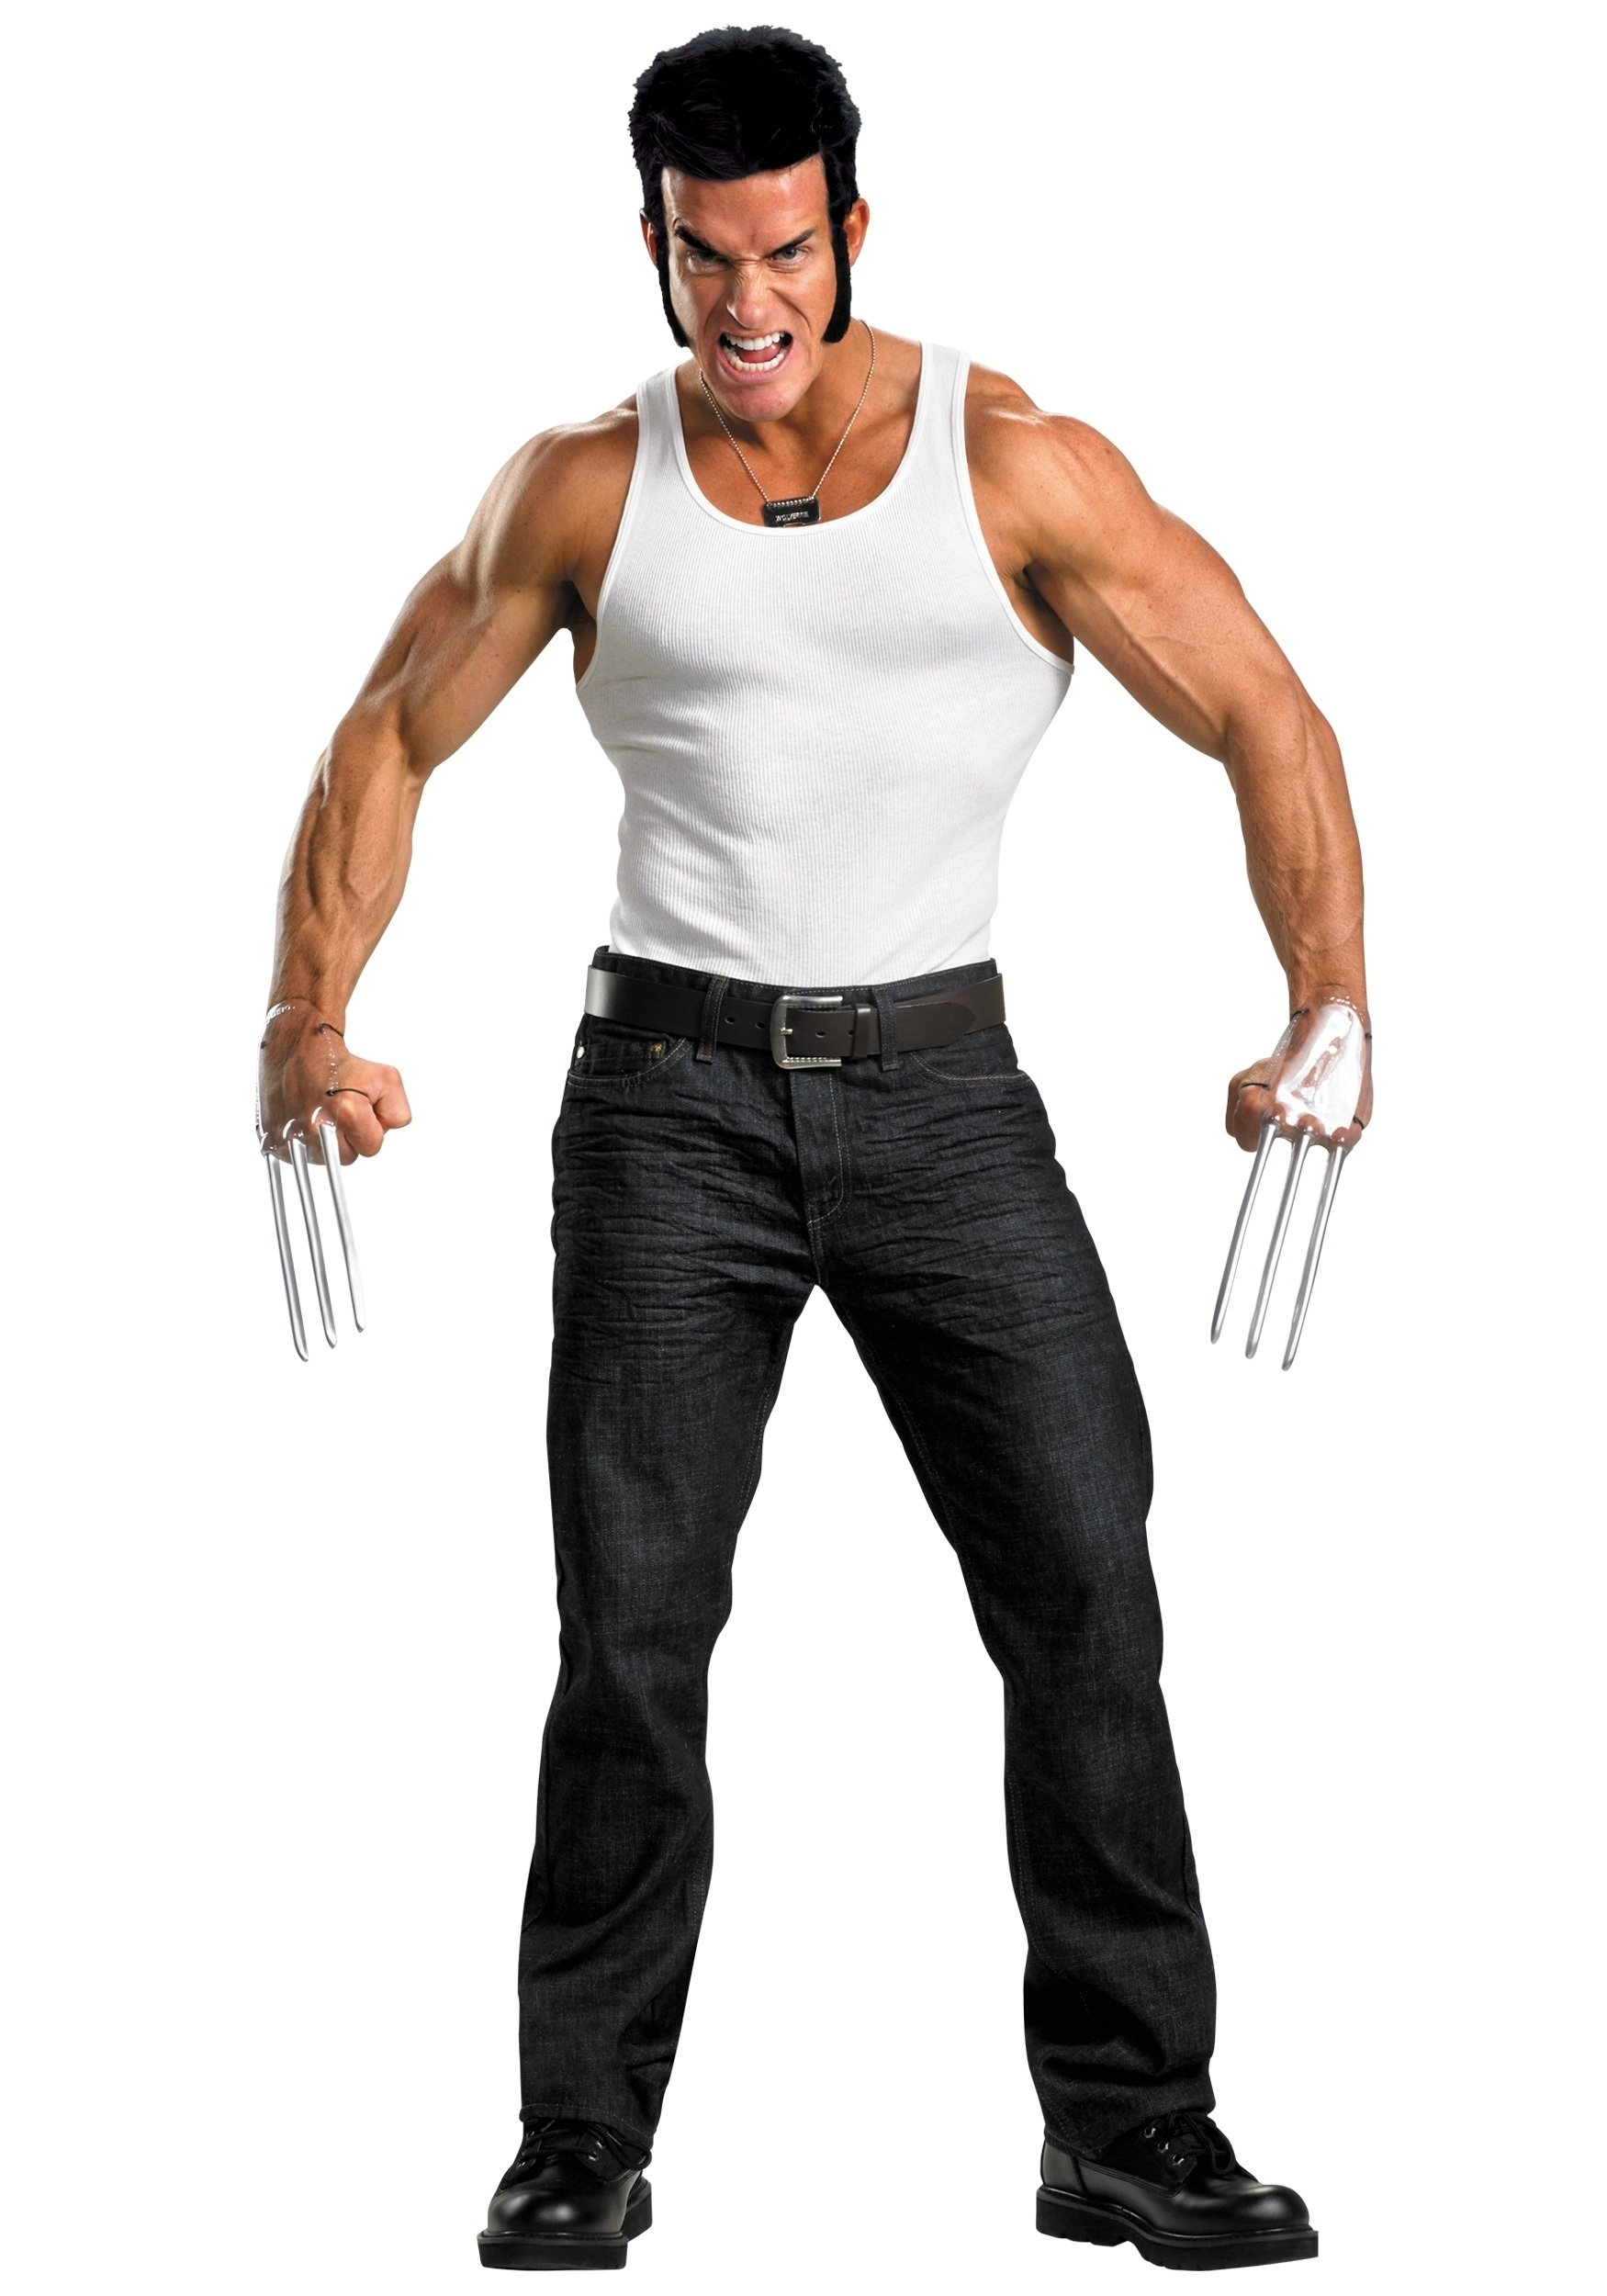 10 Unique Cool Costume Ideas For Guys wolverine accessory kit halloween costume ideas 2016 halloween 7 2020